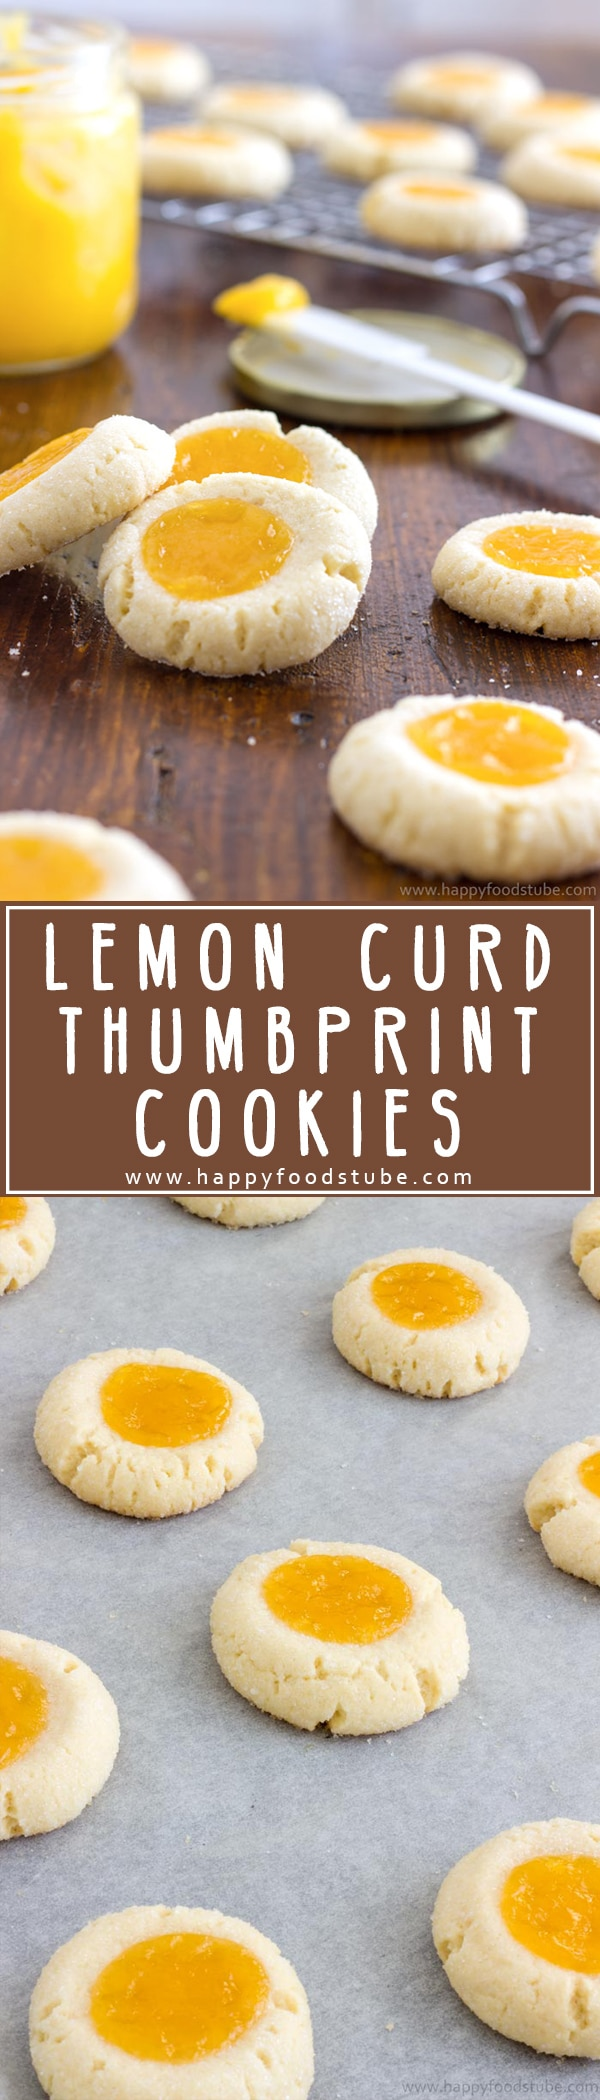 Homemade Lemon Curd Thumbprint Cookies are pure perfection. A combination of sweet buttery cookies and citrusy topping with a hint of almonds. #thumbprintcookies #cookies #lemoncurd #dessert #recipe #baking #buttercookies